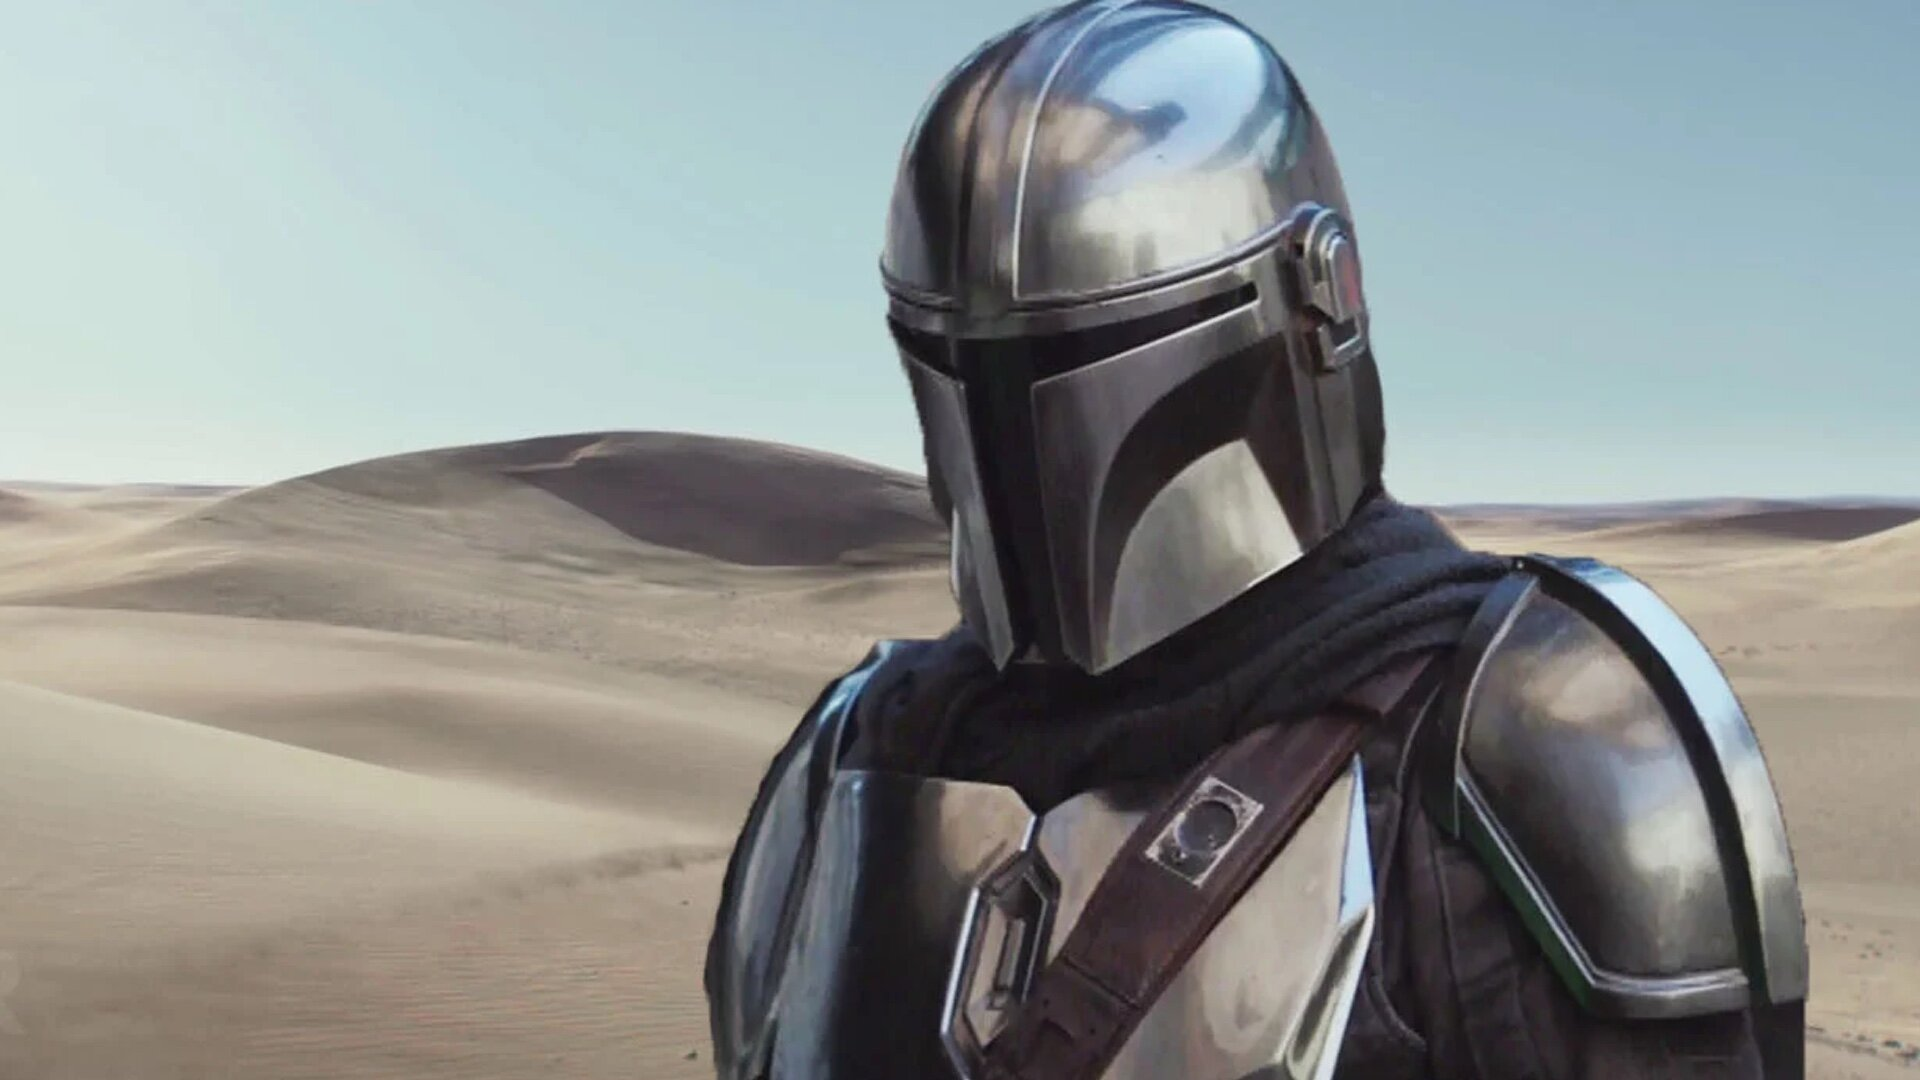 The Mandalorian Is Being Written Out Of The Mandalorian